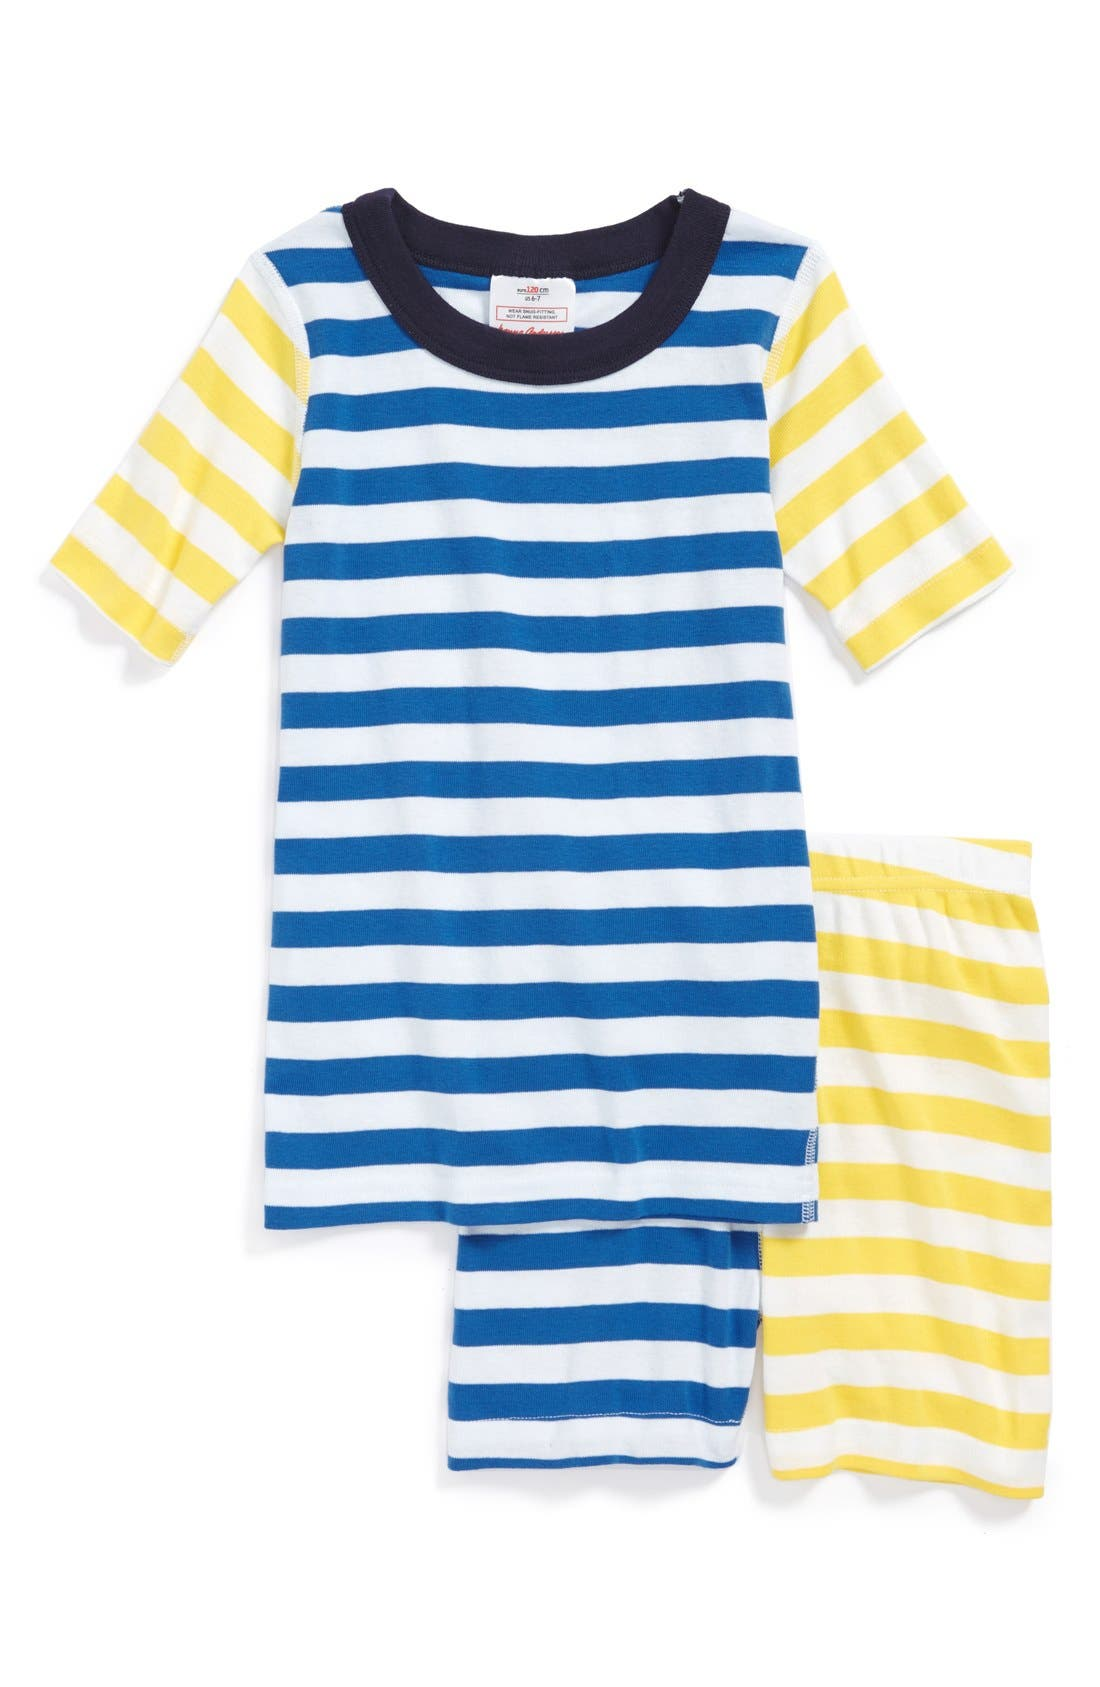 Main Image - Hanna Andersson 'Mix it Up' Two Piece Fitted Pajamas (Little Boys)